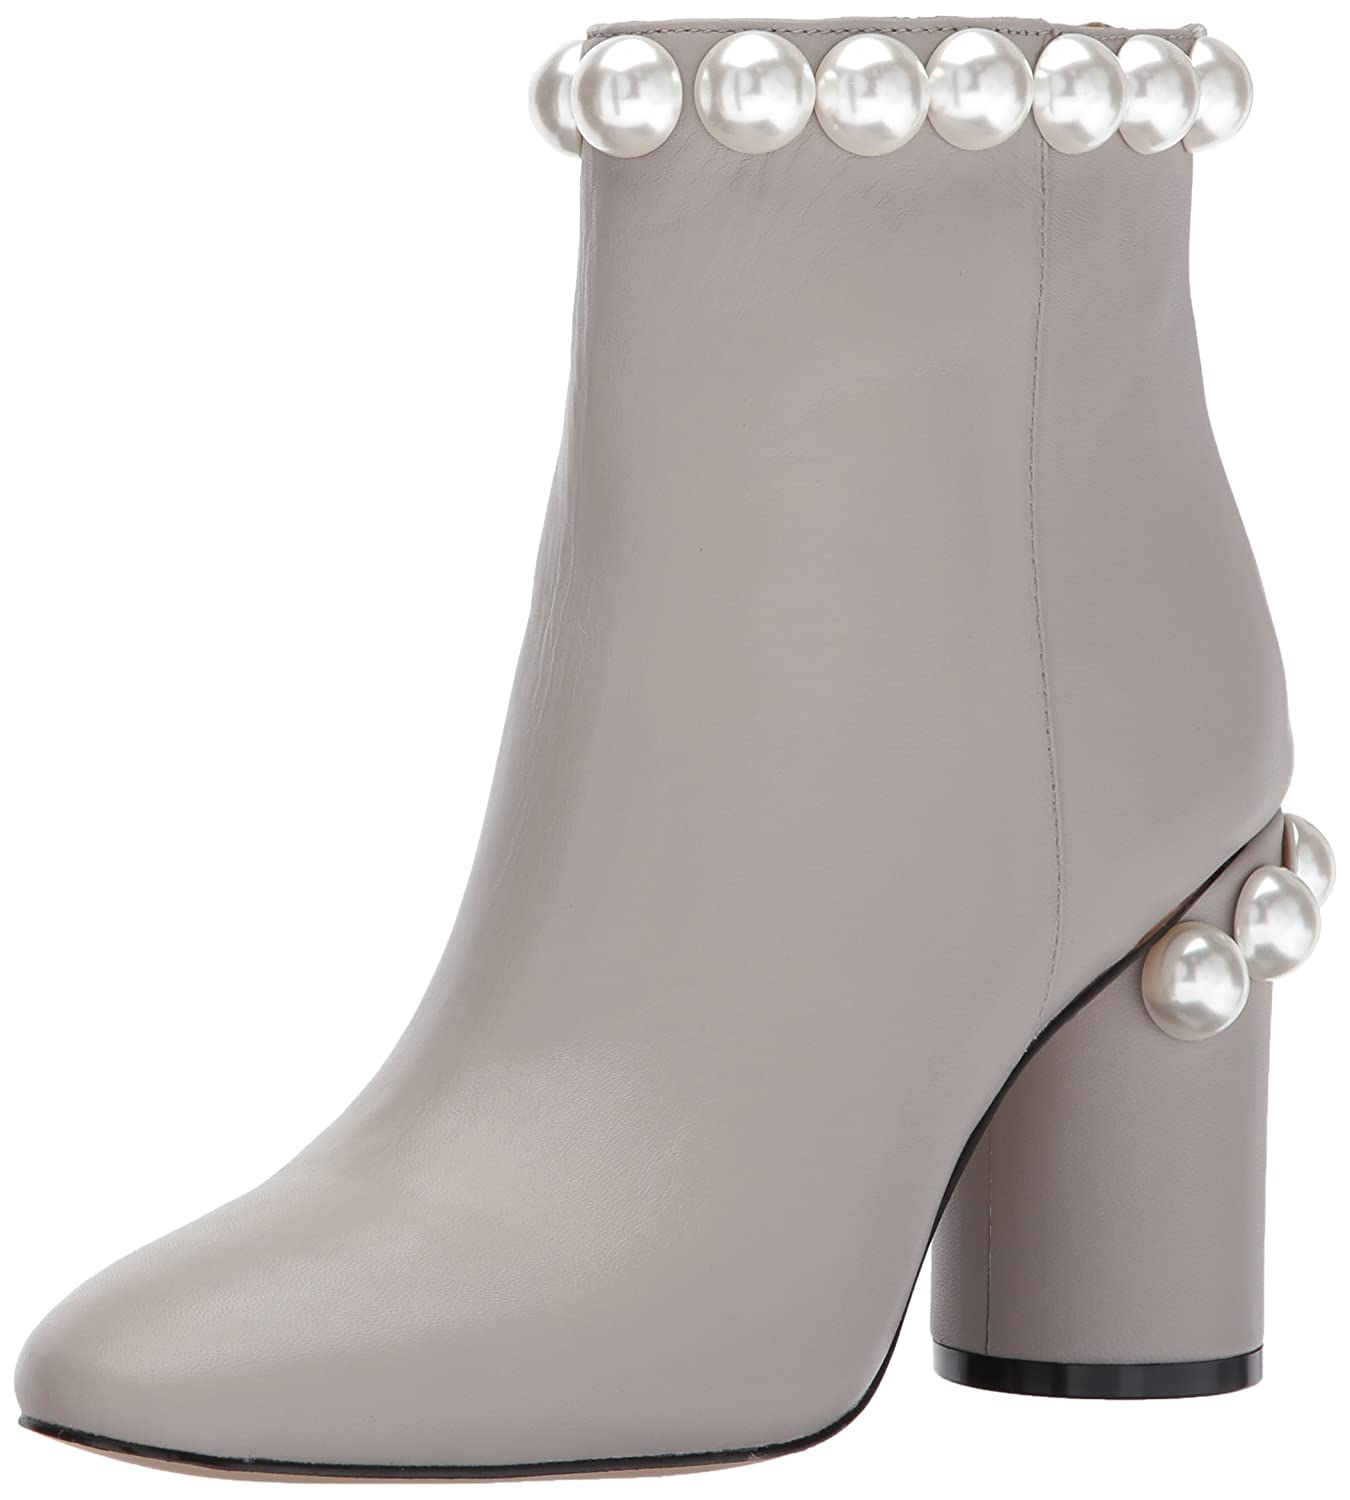 Katy Perry Women's The Opearl Ankle Boot B06XDFPM9Y 7 B(M) US|Grey